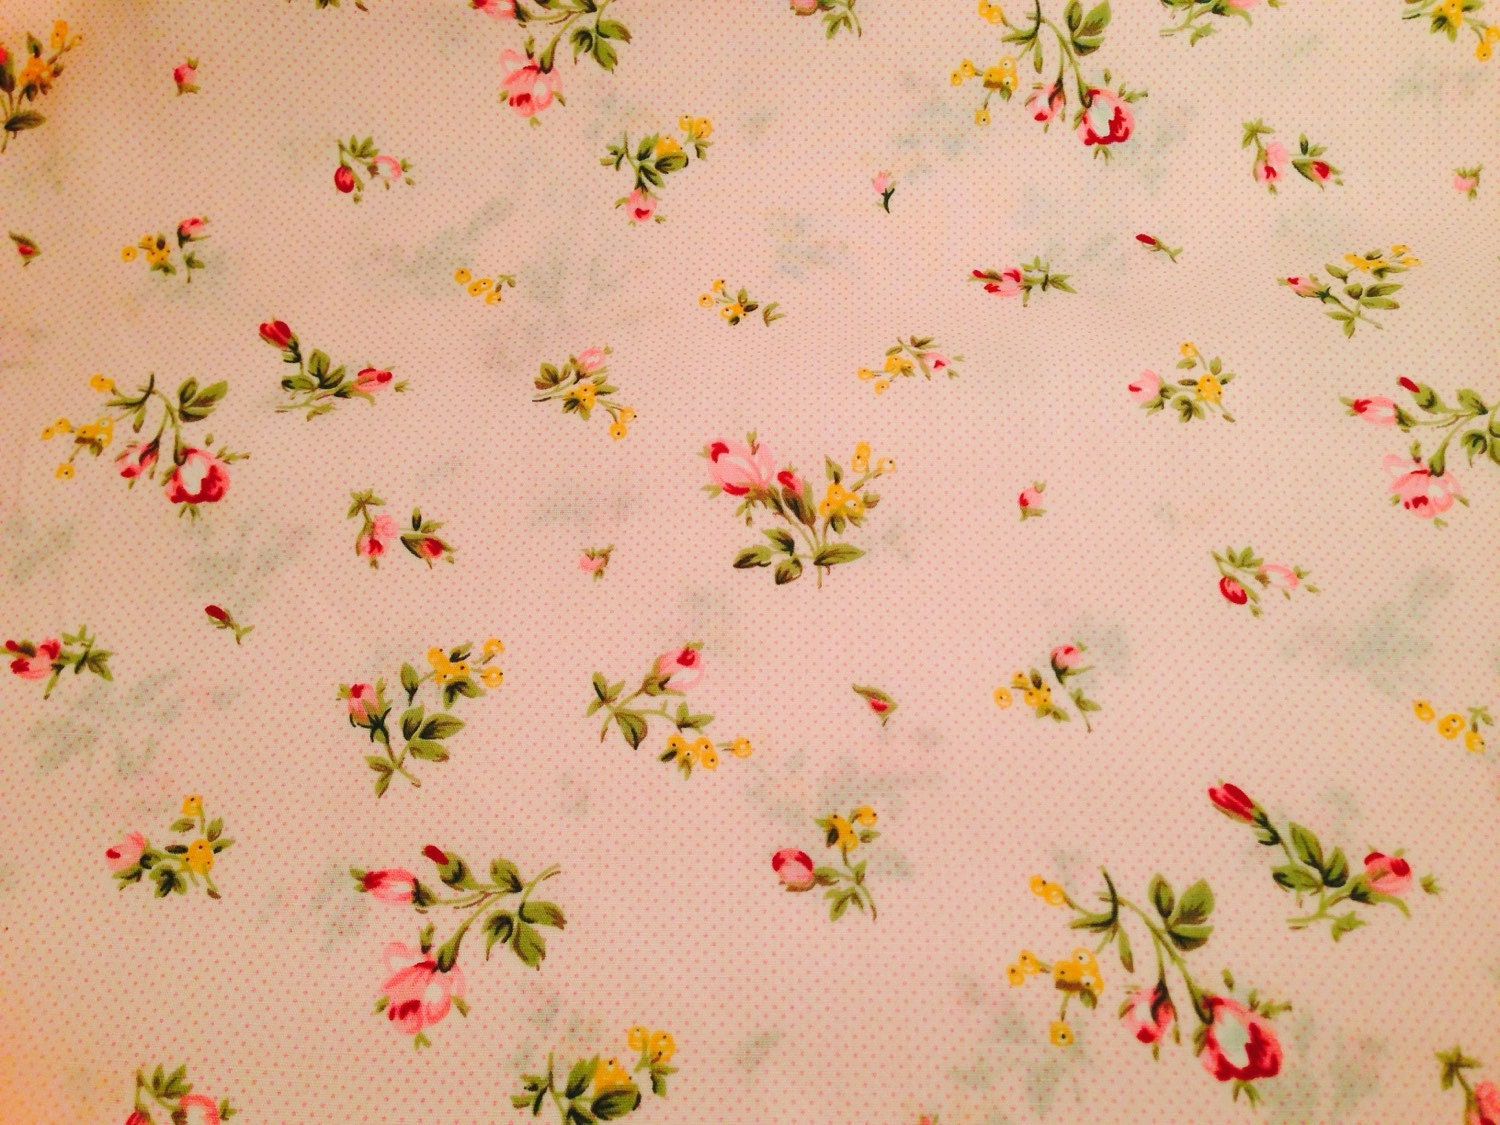 Floral cotton fabric nursery fabric pink floral by for Floral nursery fabric